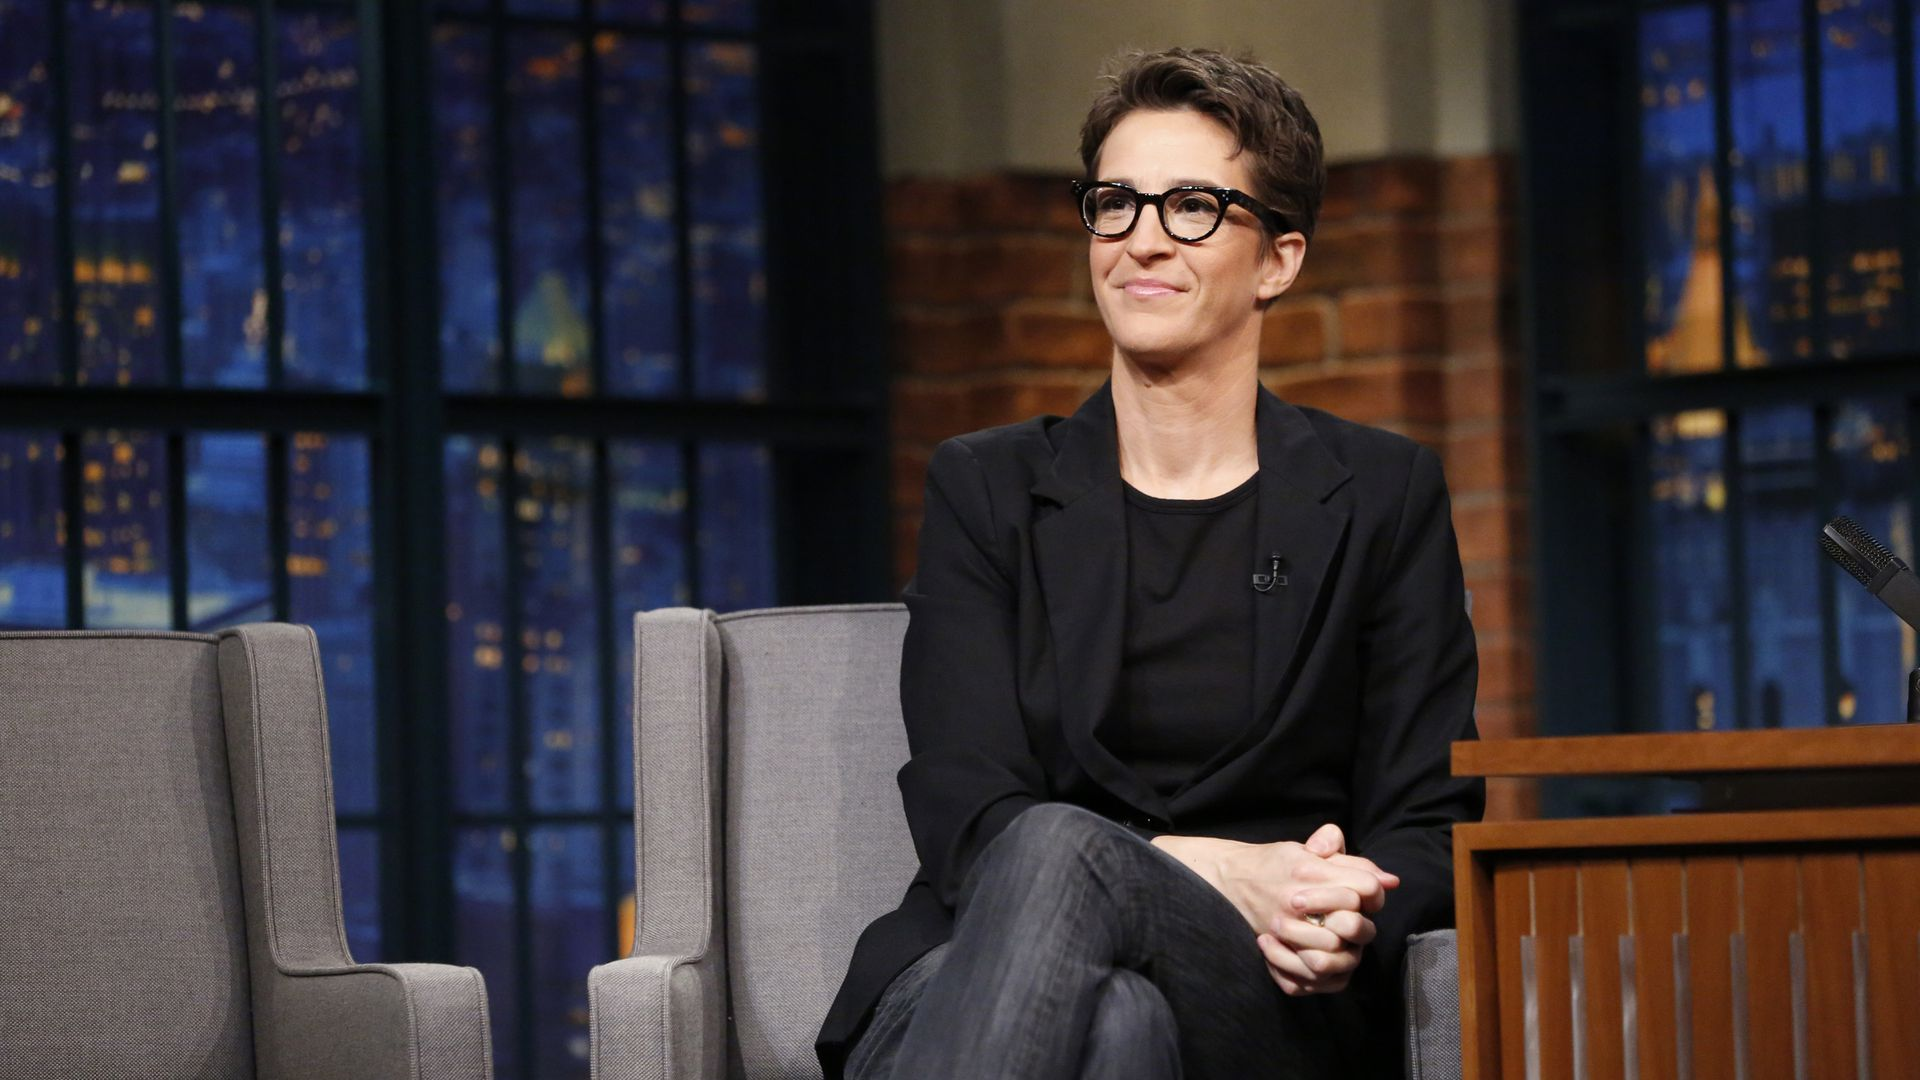 Political commentator, Rachel Maddow during an interview on December 21, 2016